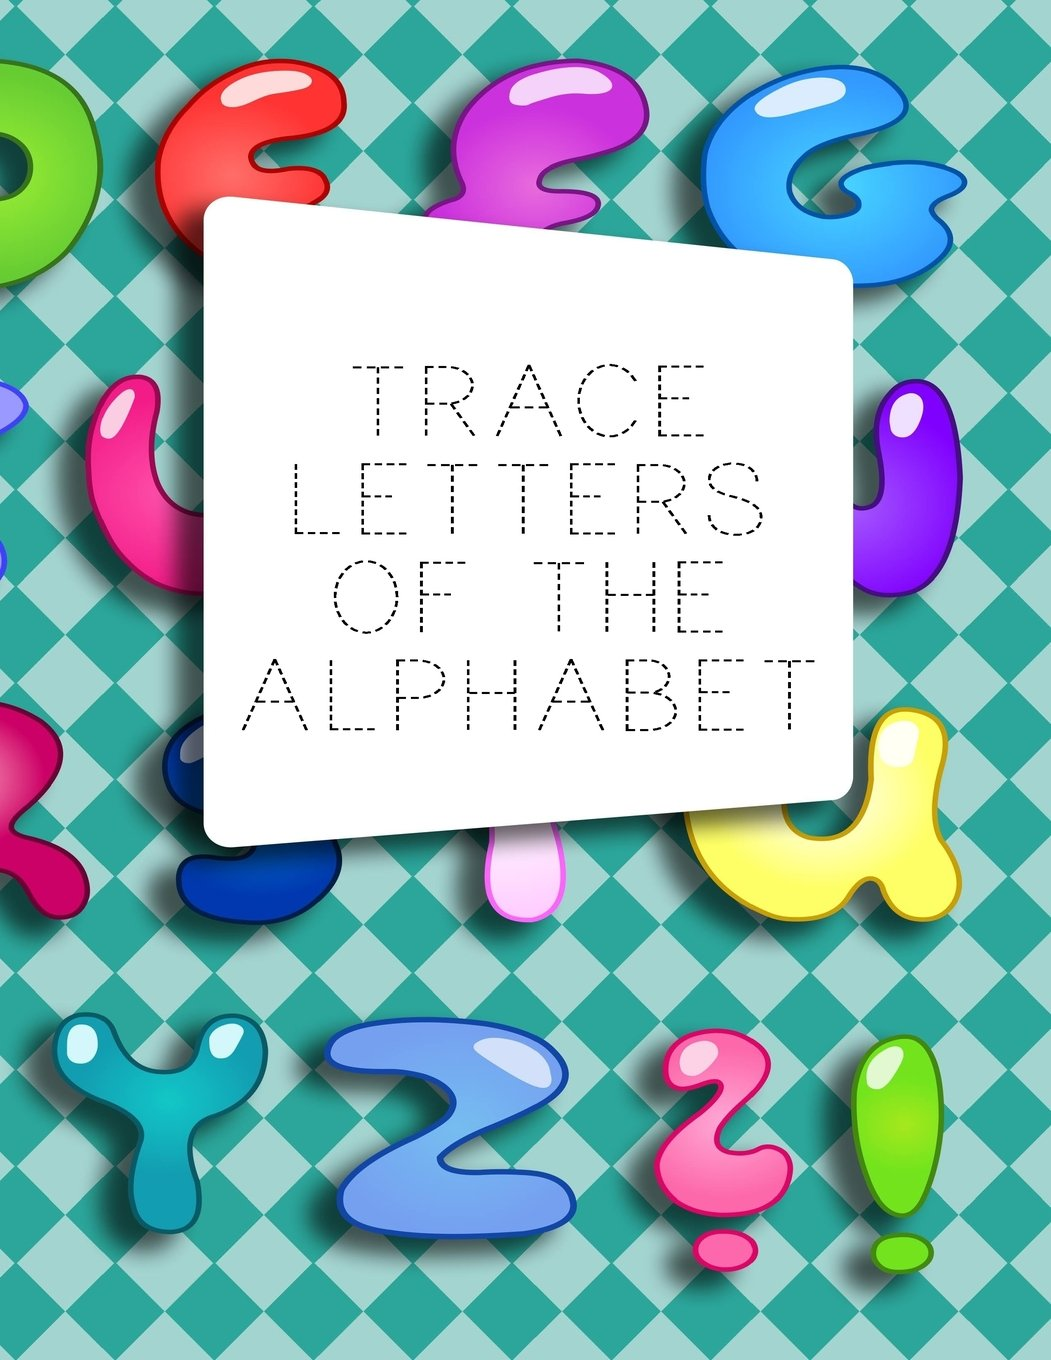 "Download Trace Letters Of The Alphabet: Letter Tracing Practice Book For Preschoolers, Kindergarten (Printing For Kids Ages 3-5)(1"" Lines, Dashed) pdf epub"